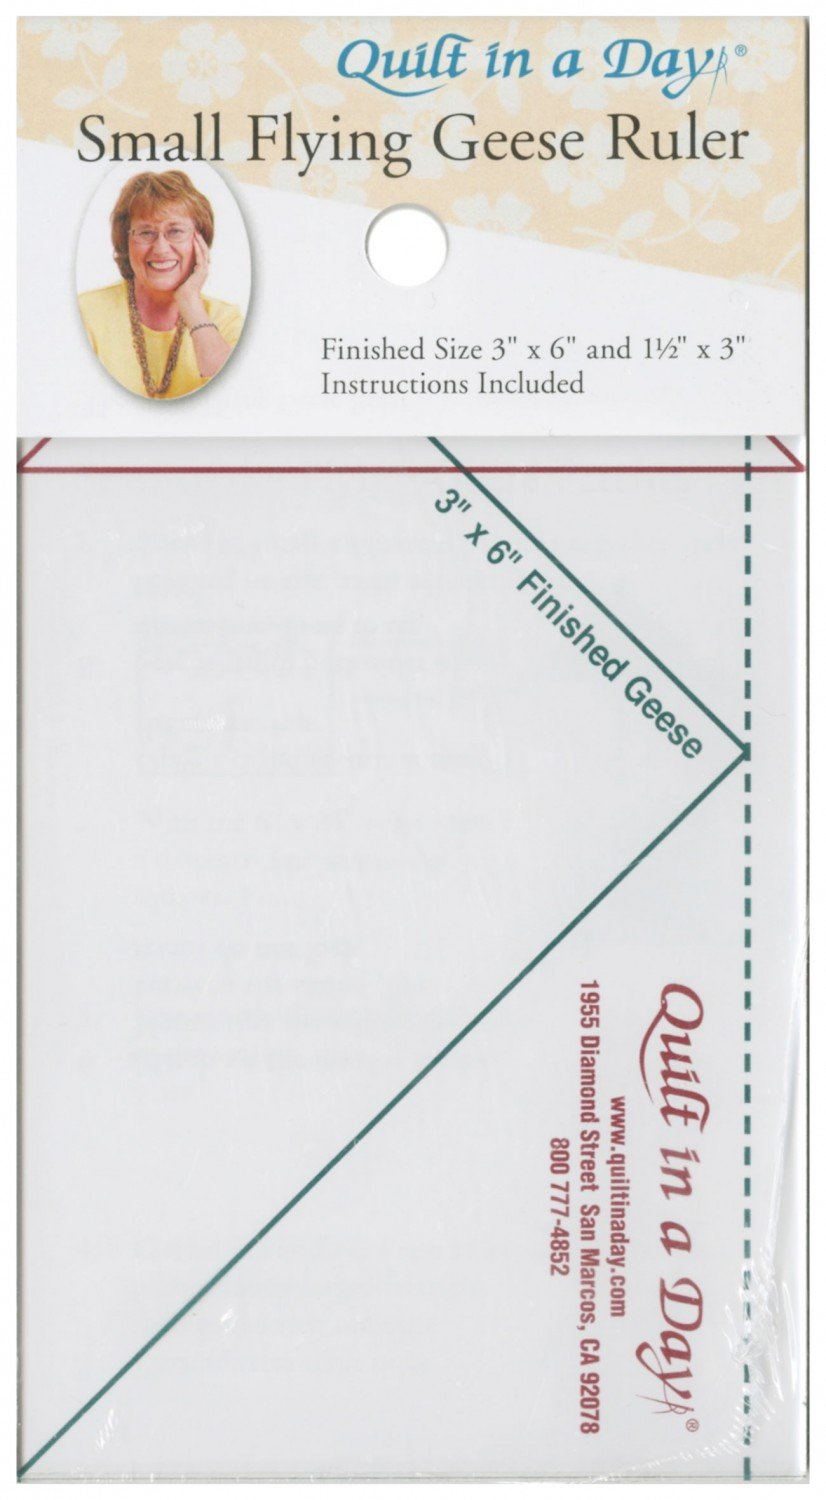 Small Flying Geese Ruler 3 1/2 x 6 1/2